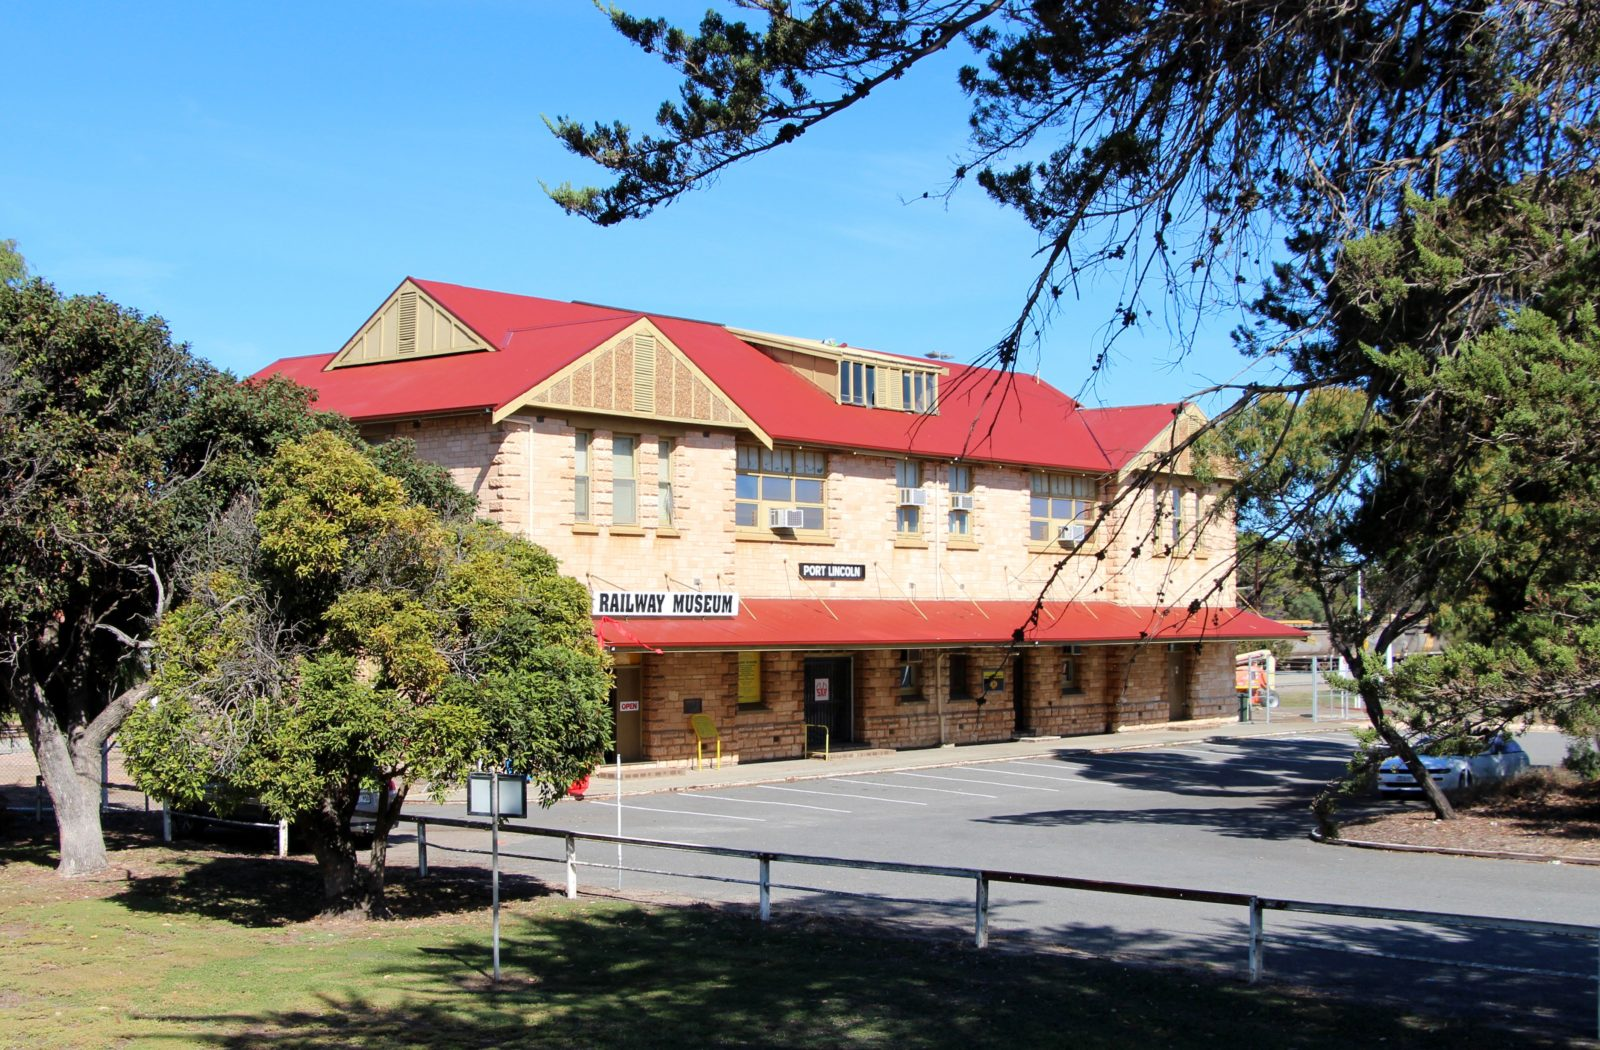 Port Lincoln Railway Museum, housed in the Port Lincoln railway station